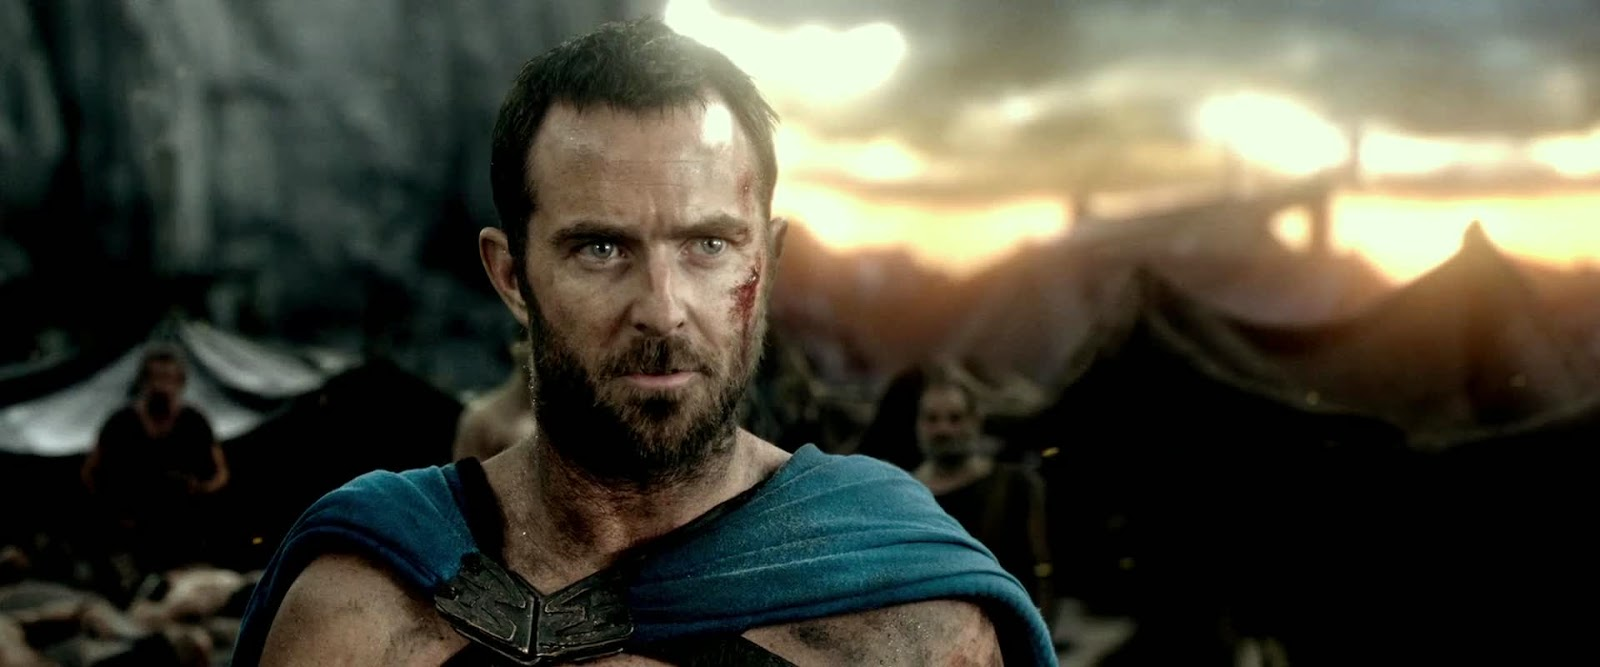 JJTNG: '300: Rise of an Empire' Review